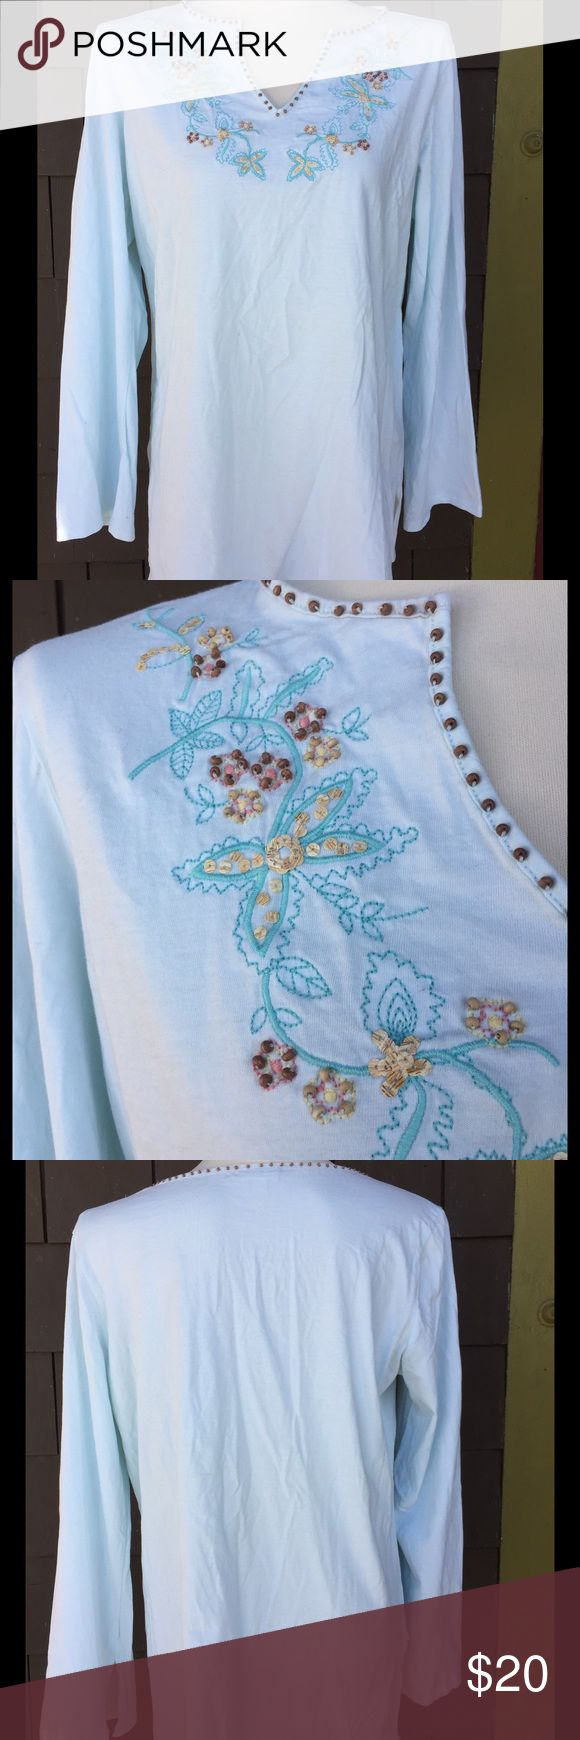 "J..Jill hippie top Pale mint green with great beaded and embroidered details make up this light weight tunic top. Beaded neckline follows all the way around the back. Great details. Flowey, flattering lines. 💯 % cotton. EUC. 22""p2p. 29"" long. J. Jill Tops"